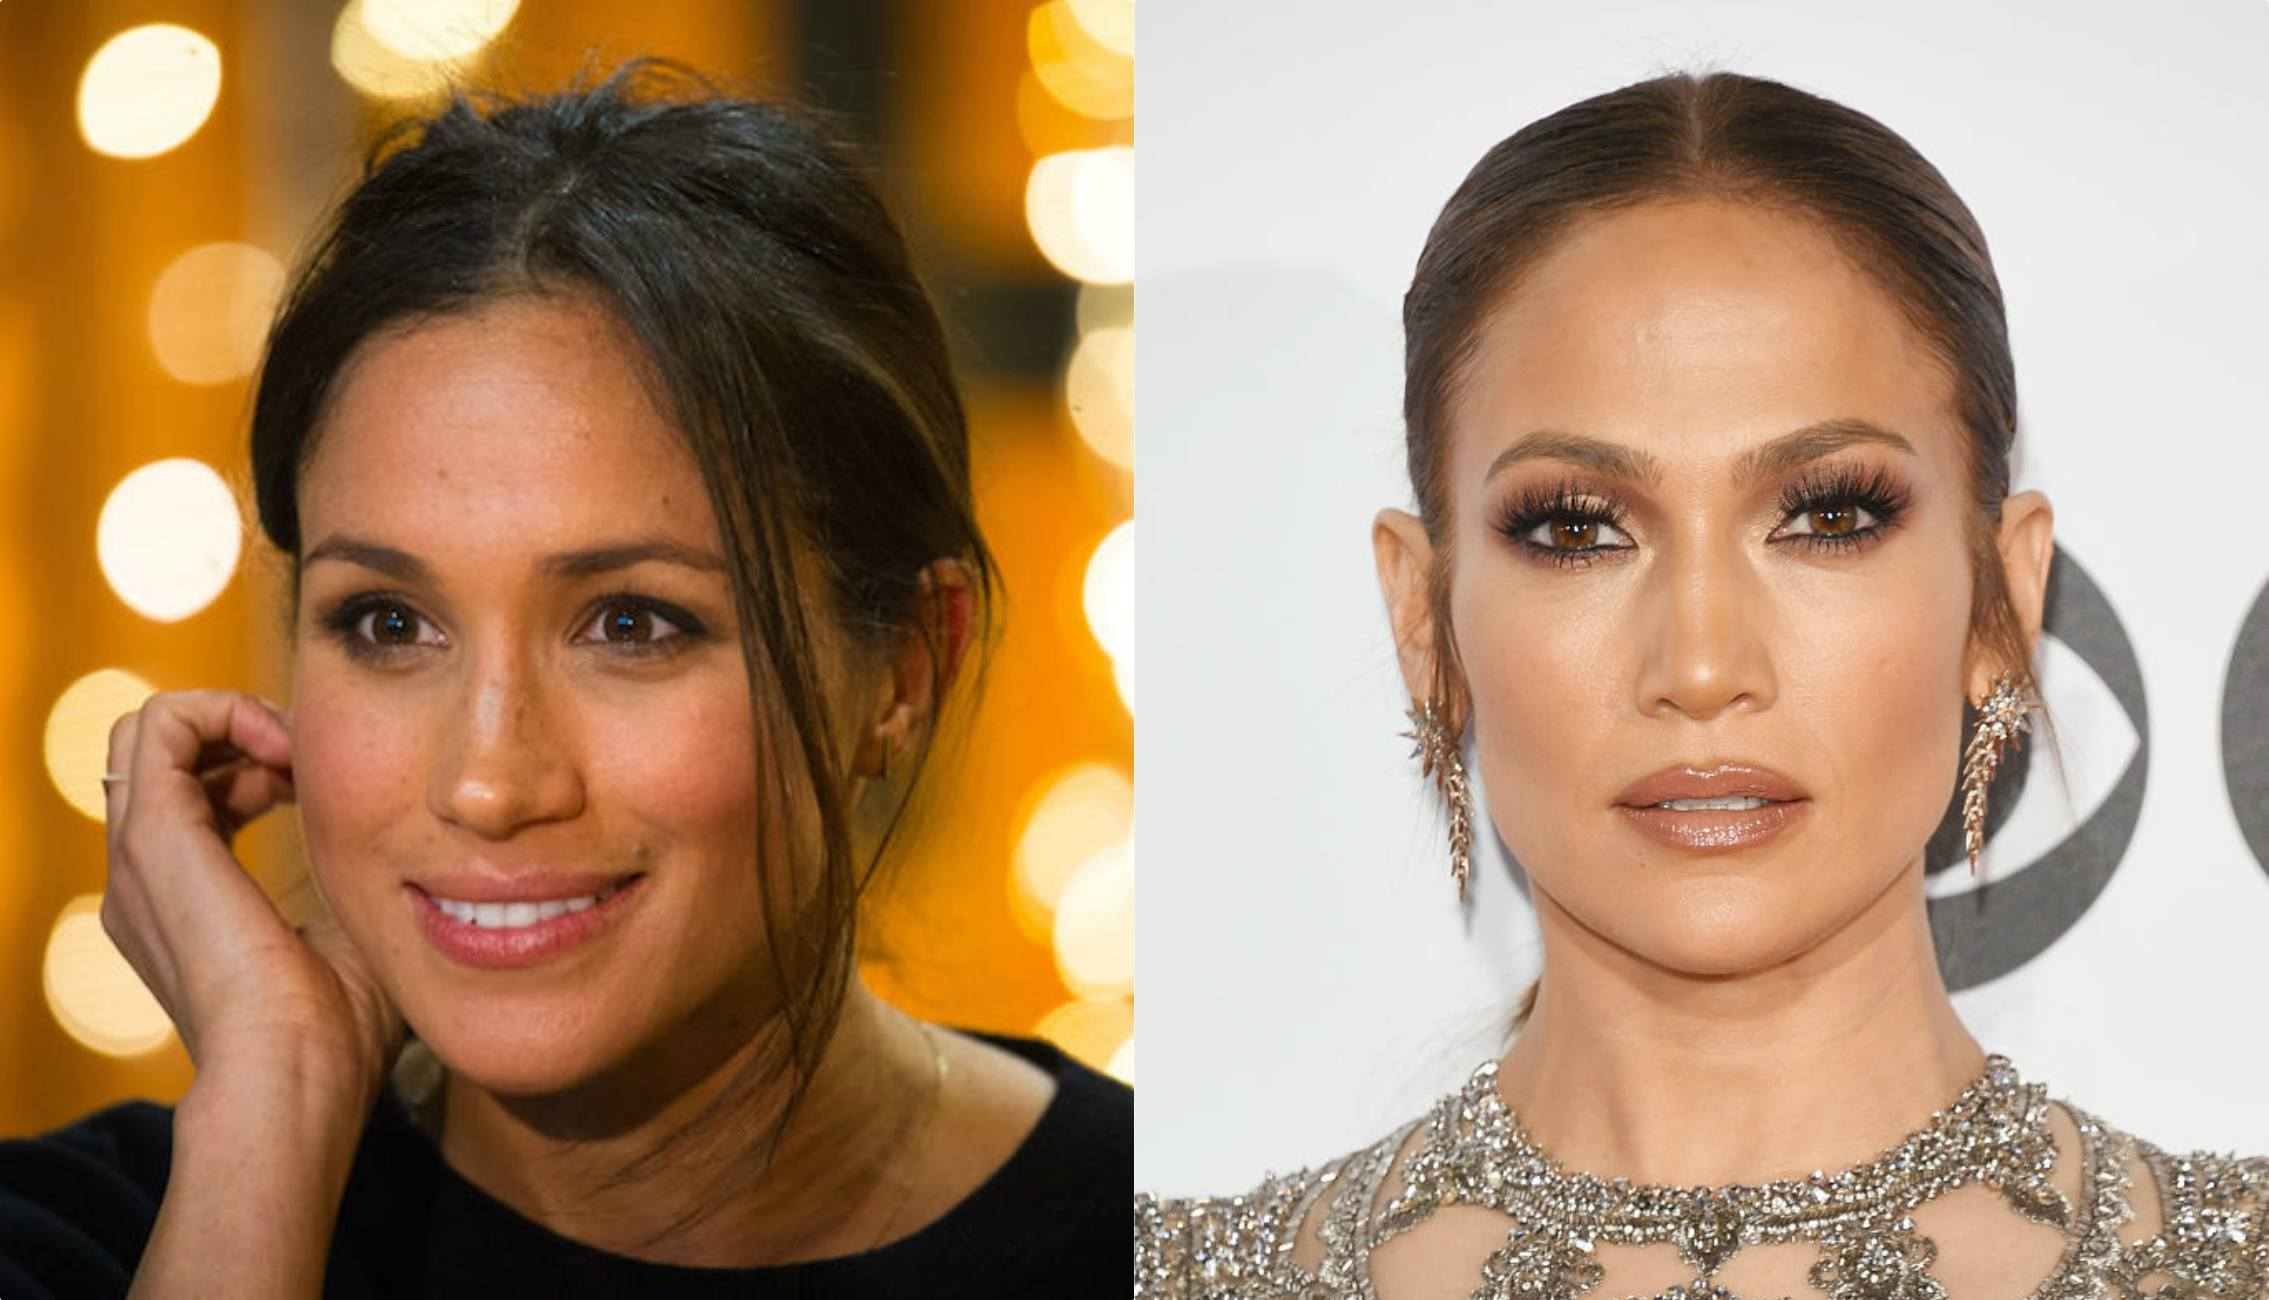 Meghan Markle and JLo skin